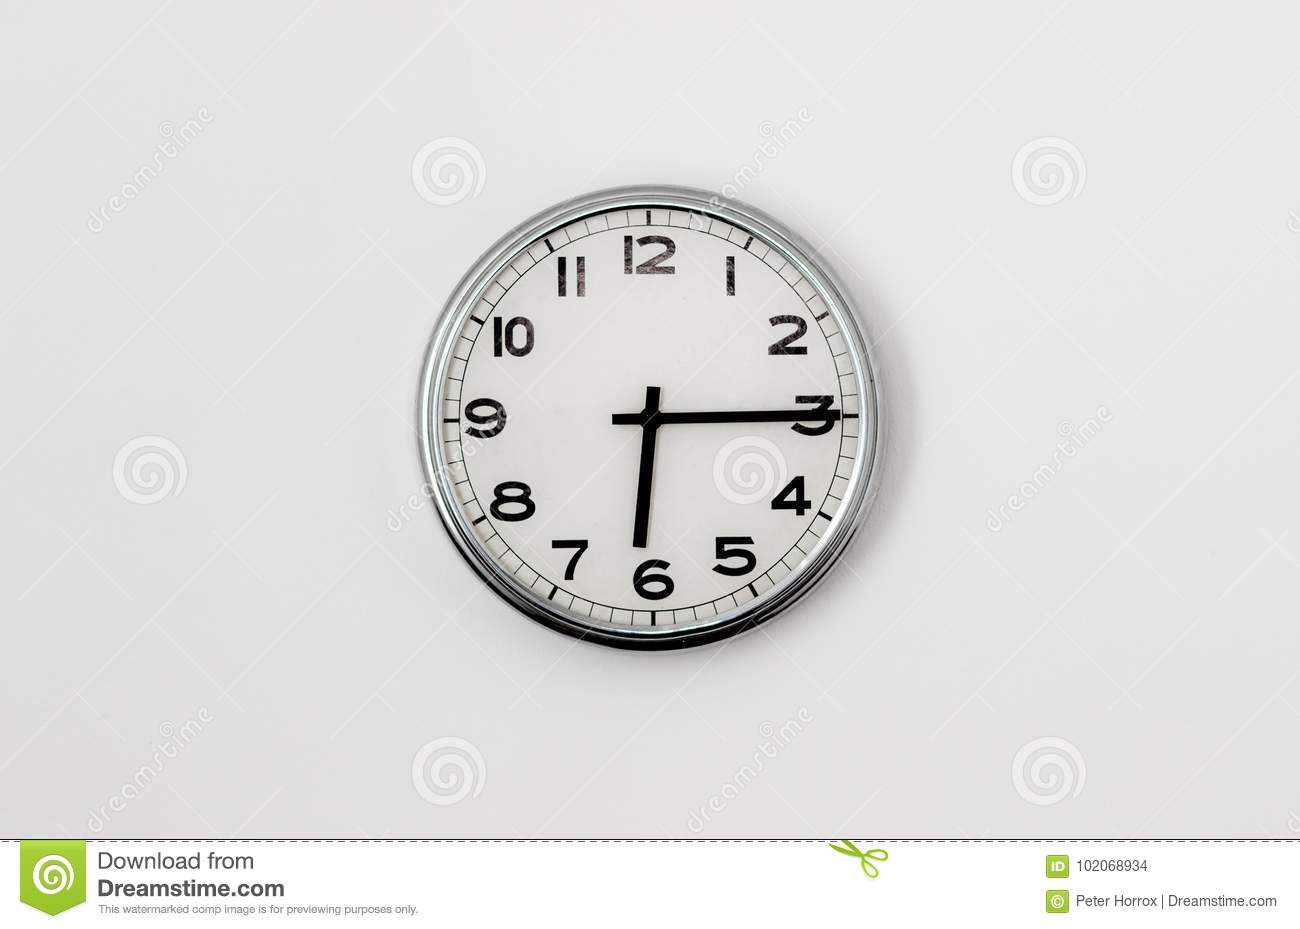 Clock 6 15 Stock Photo Image Of Object Measurement